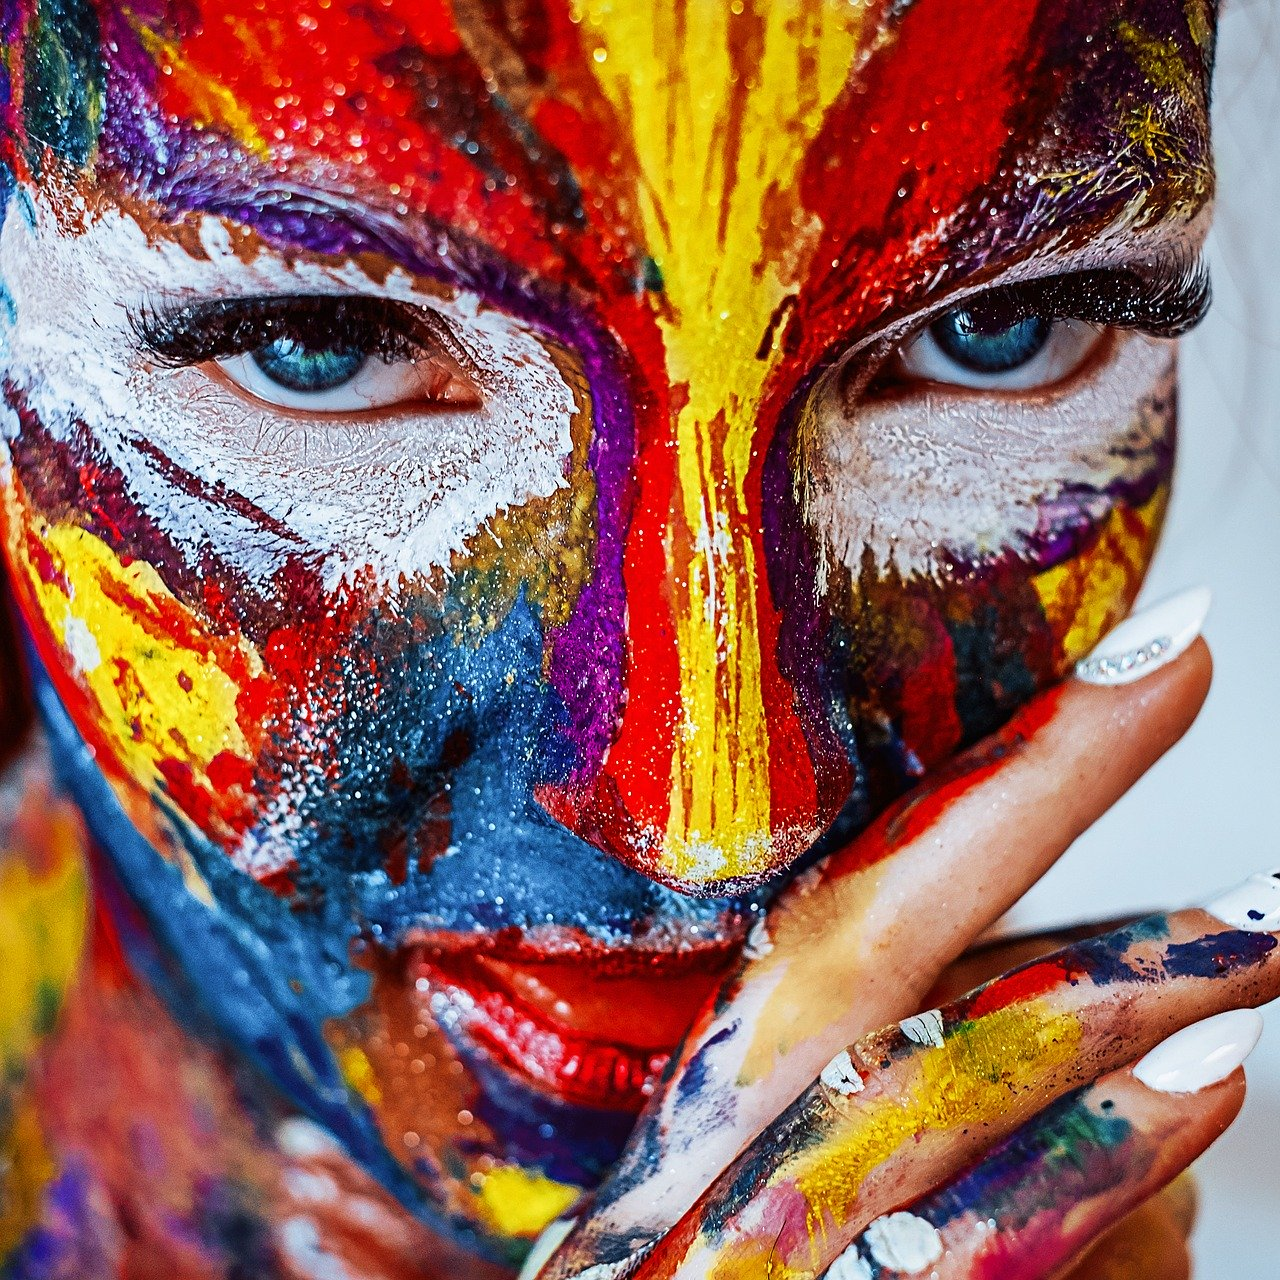 Artistic Makeup Collage